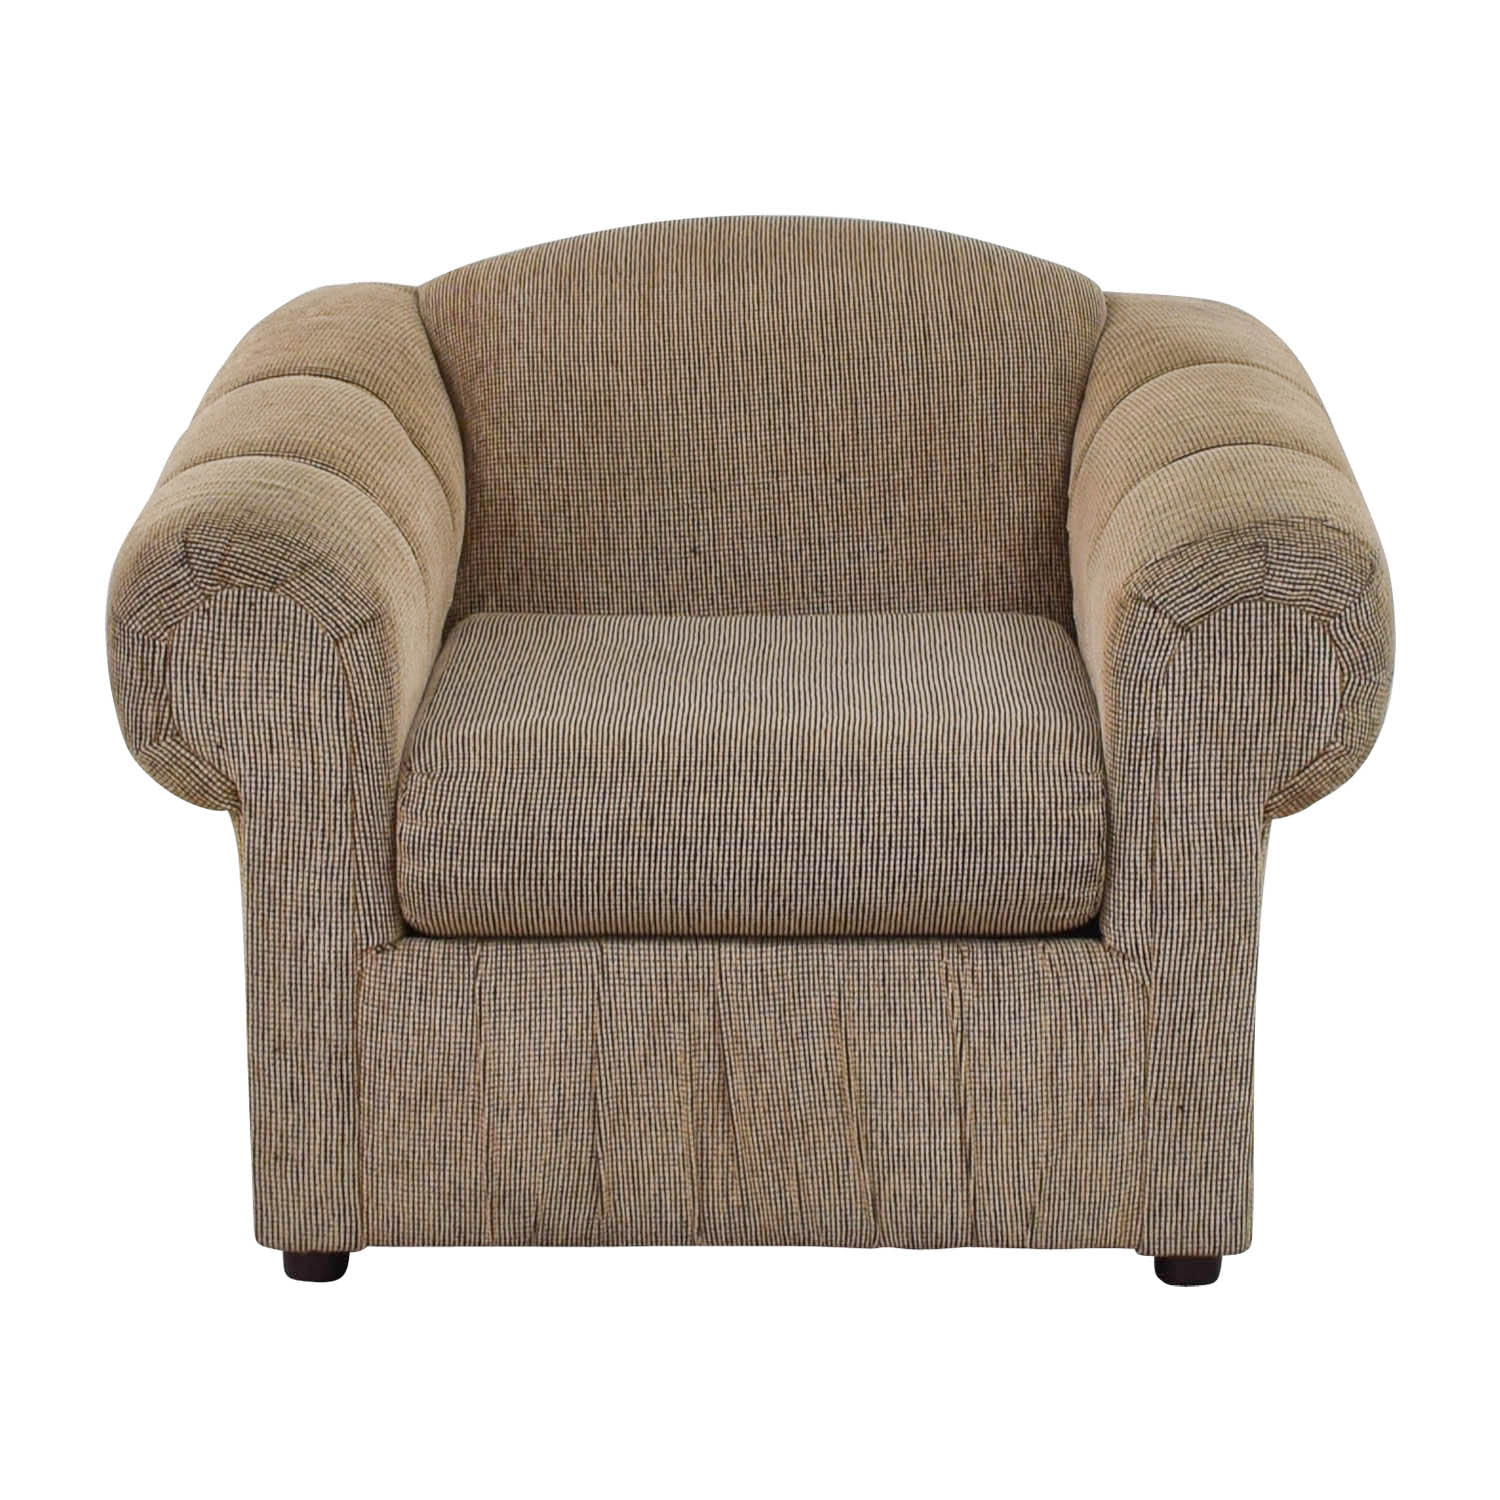 Tan Rolled Arm Accent Chair Chairs